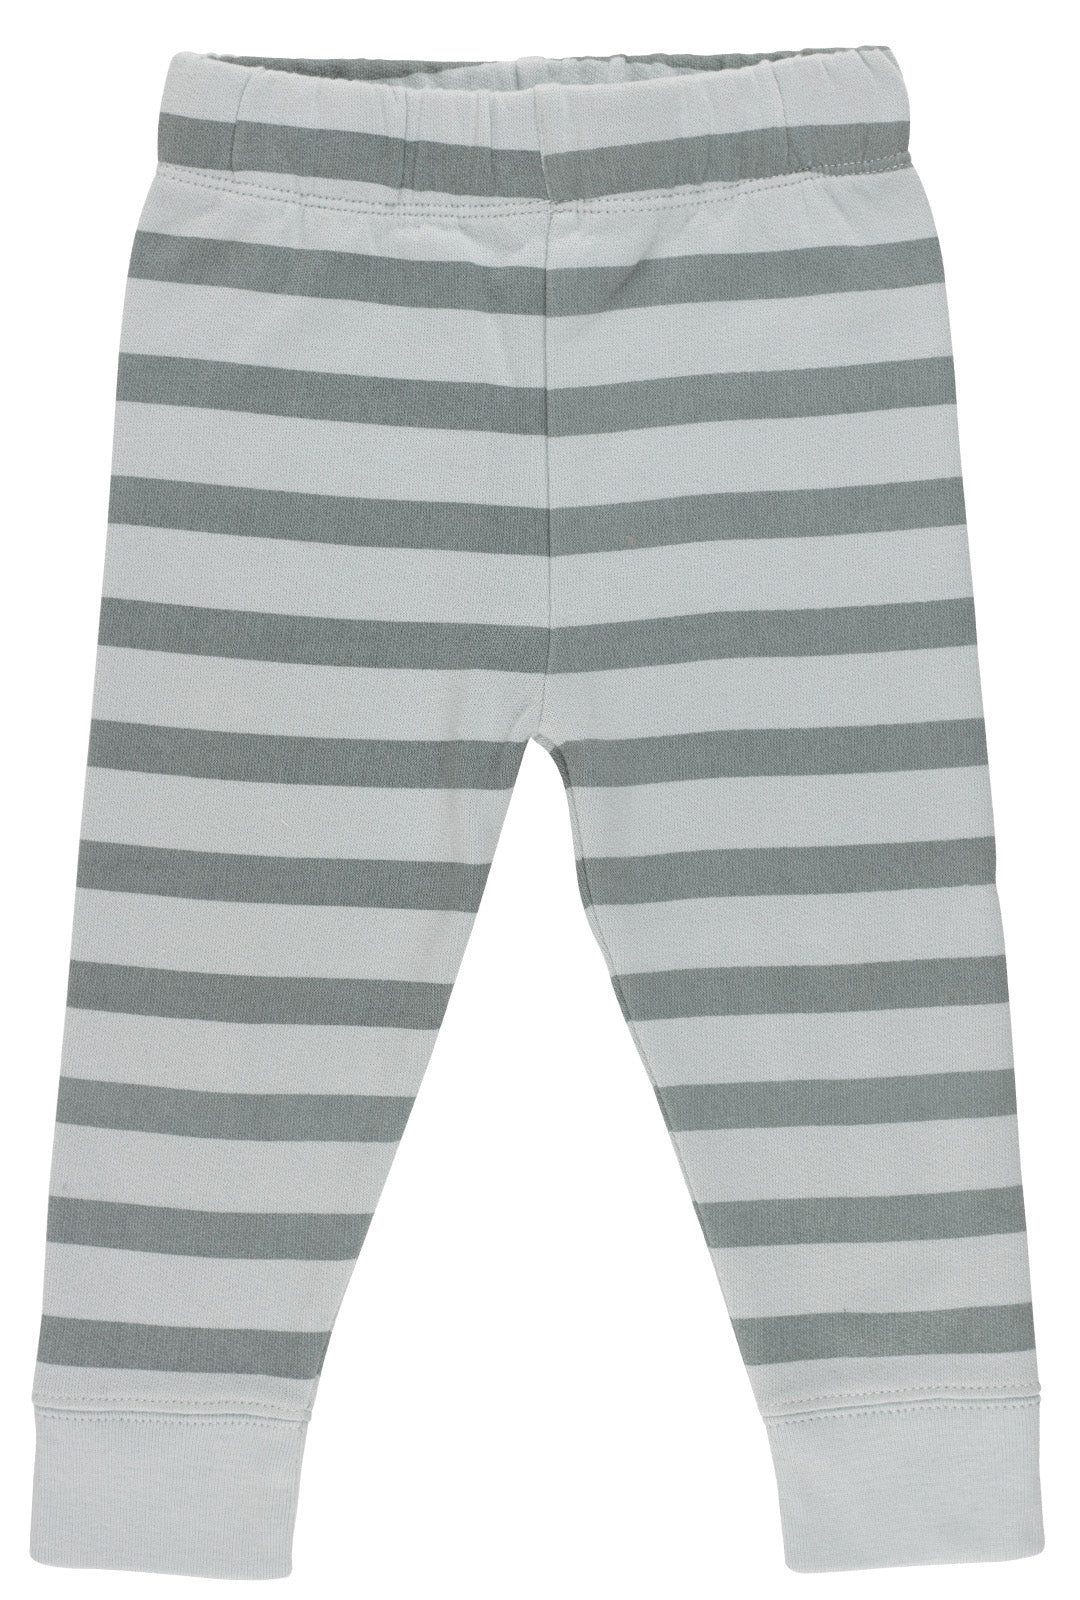 Silver Blue Stripes Joggers